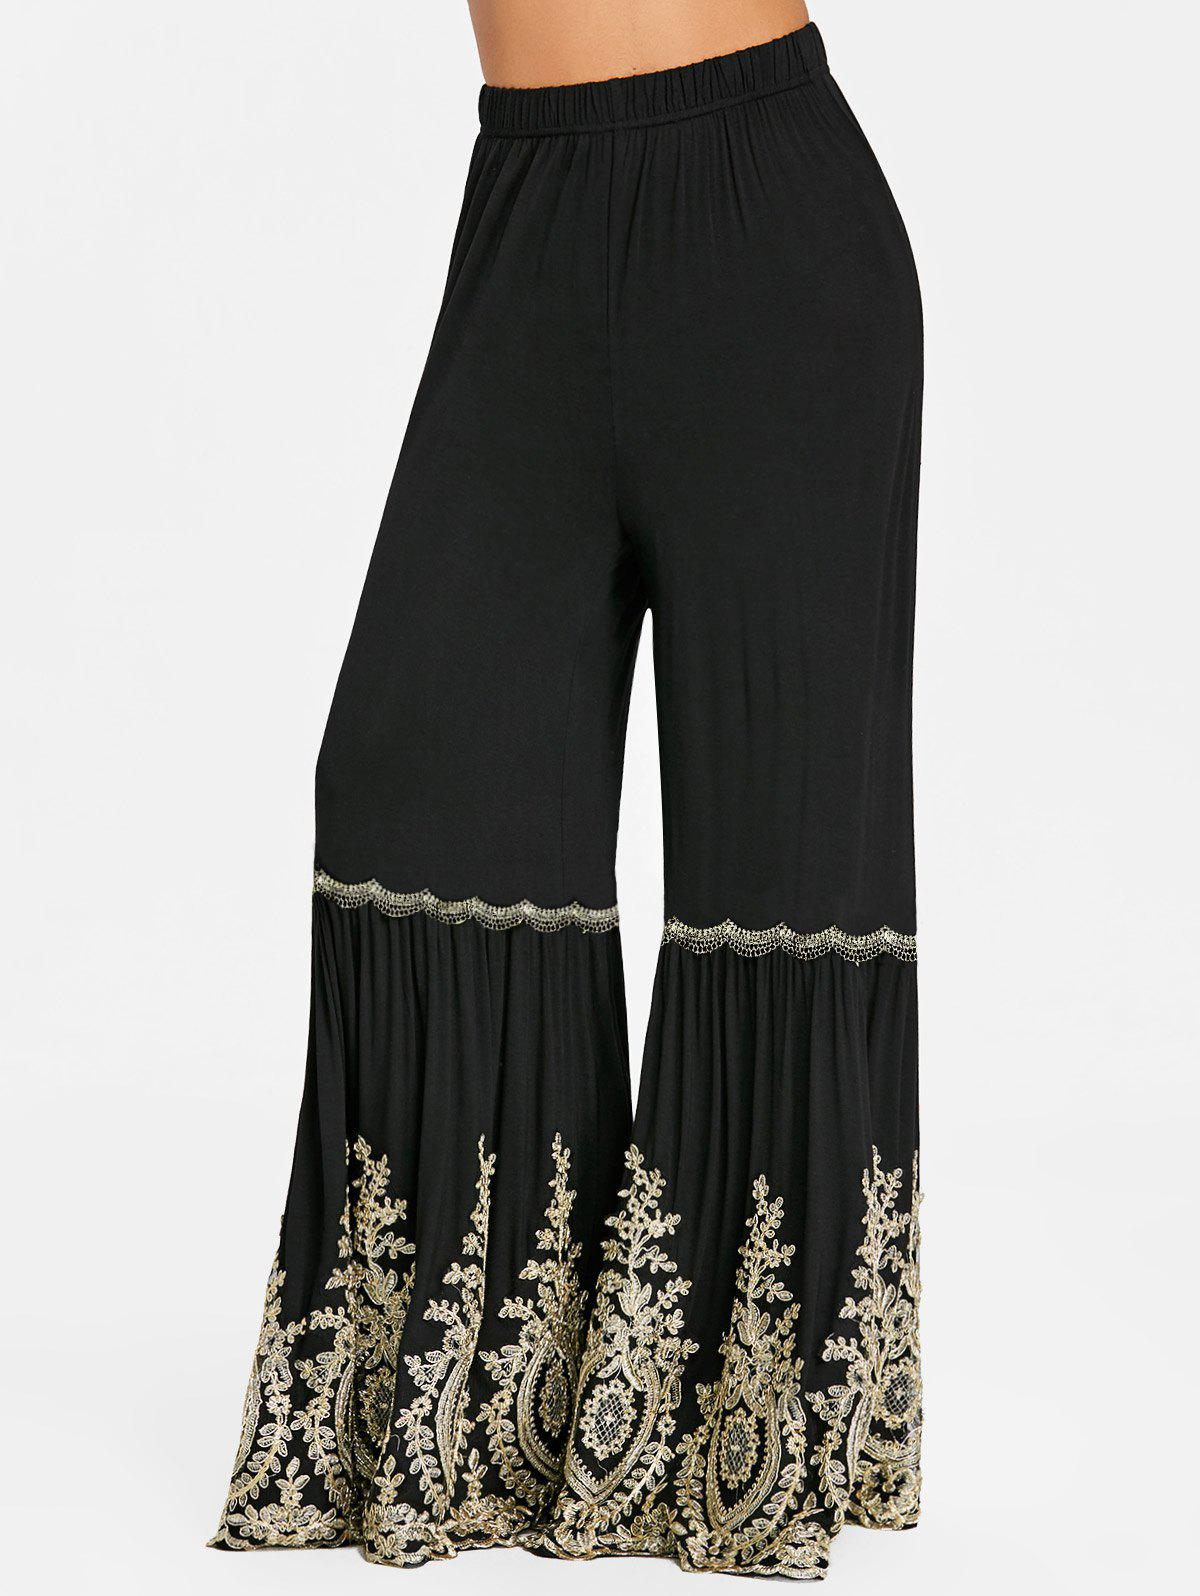 High Waisted Applique Wide Leg Flare Palazzo Pants - BLACK L